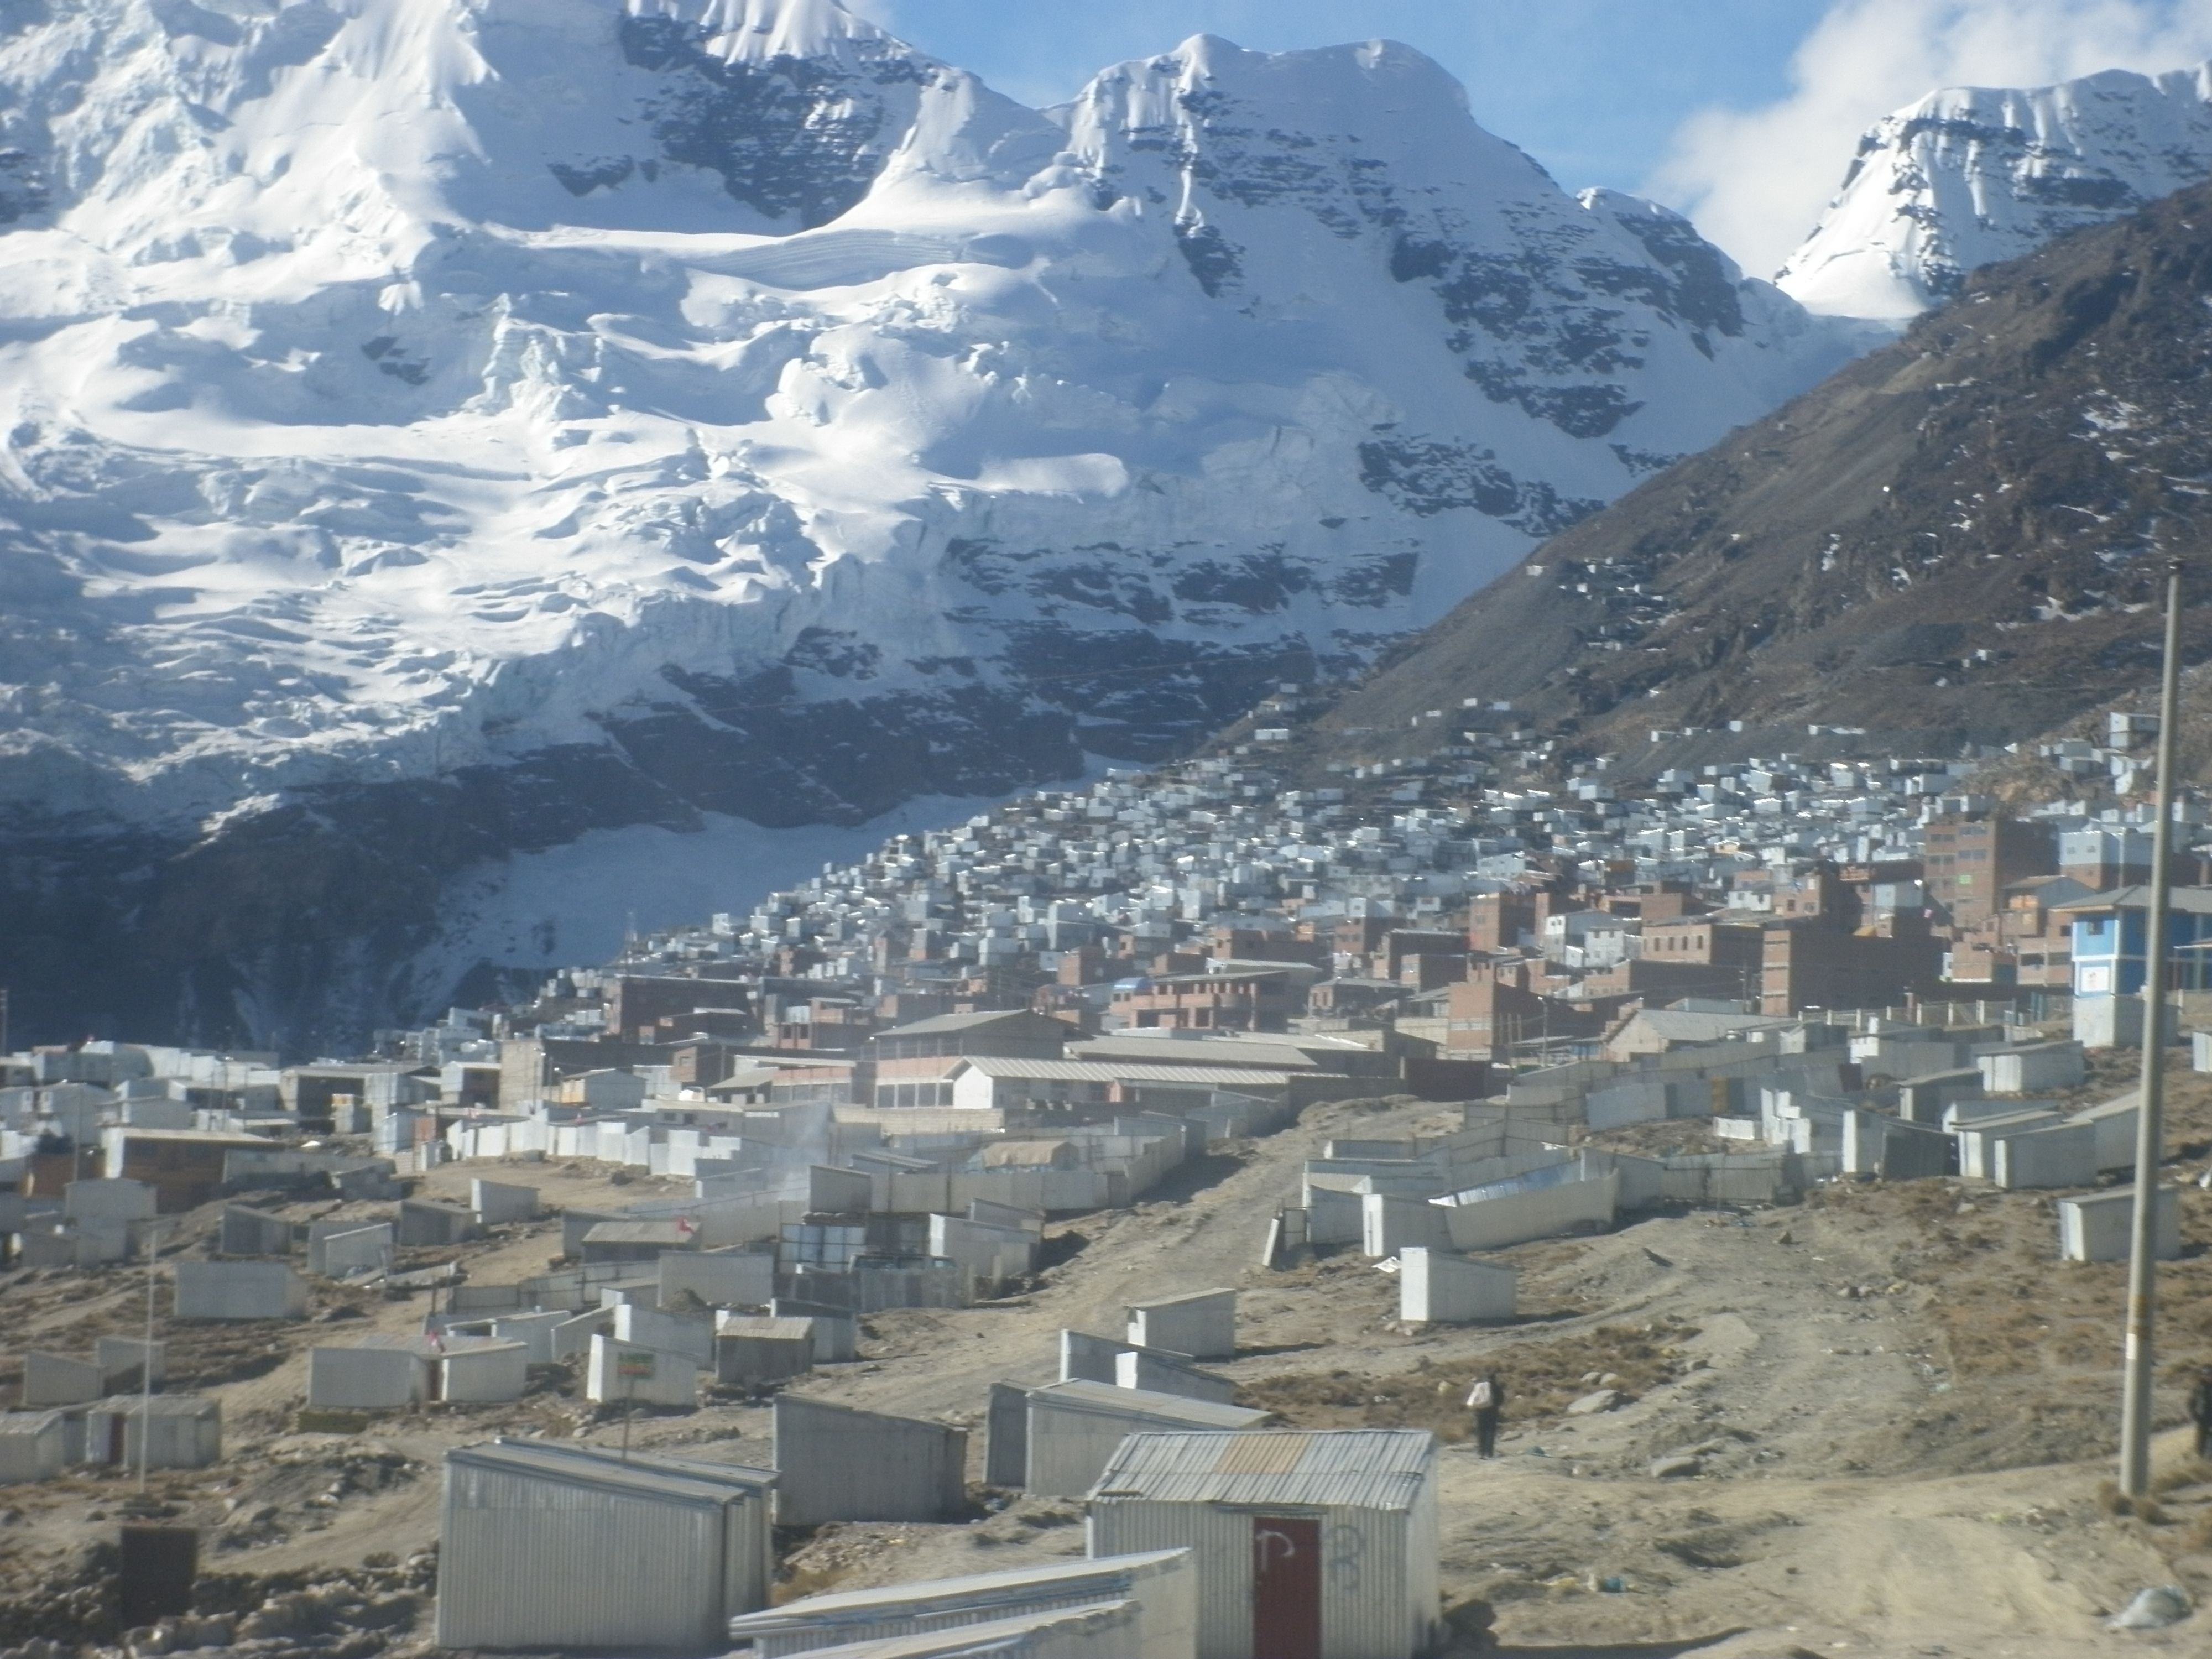 La Rinconada,  Peru. The Highest elevated town in the world at over 16,000 feet